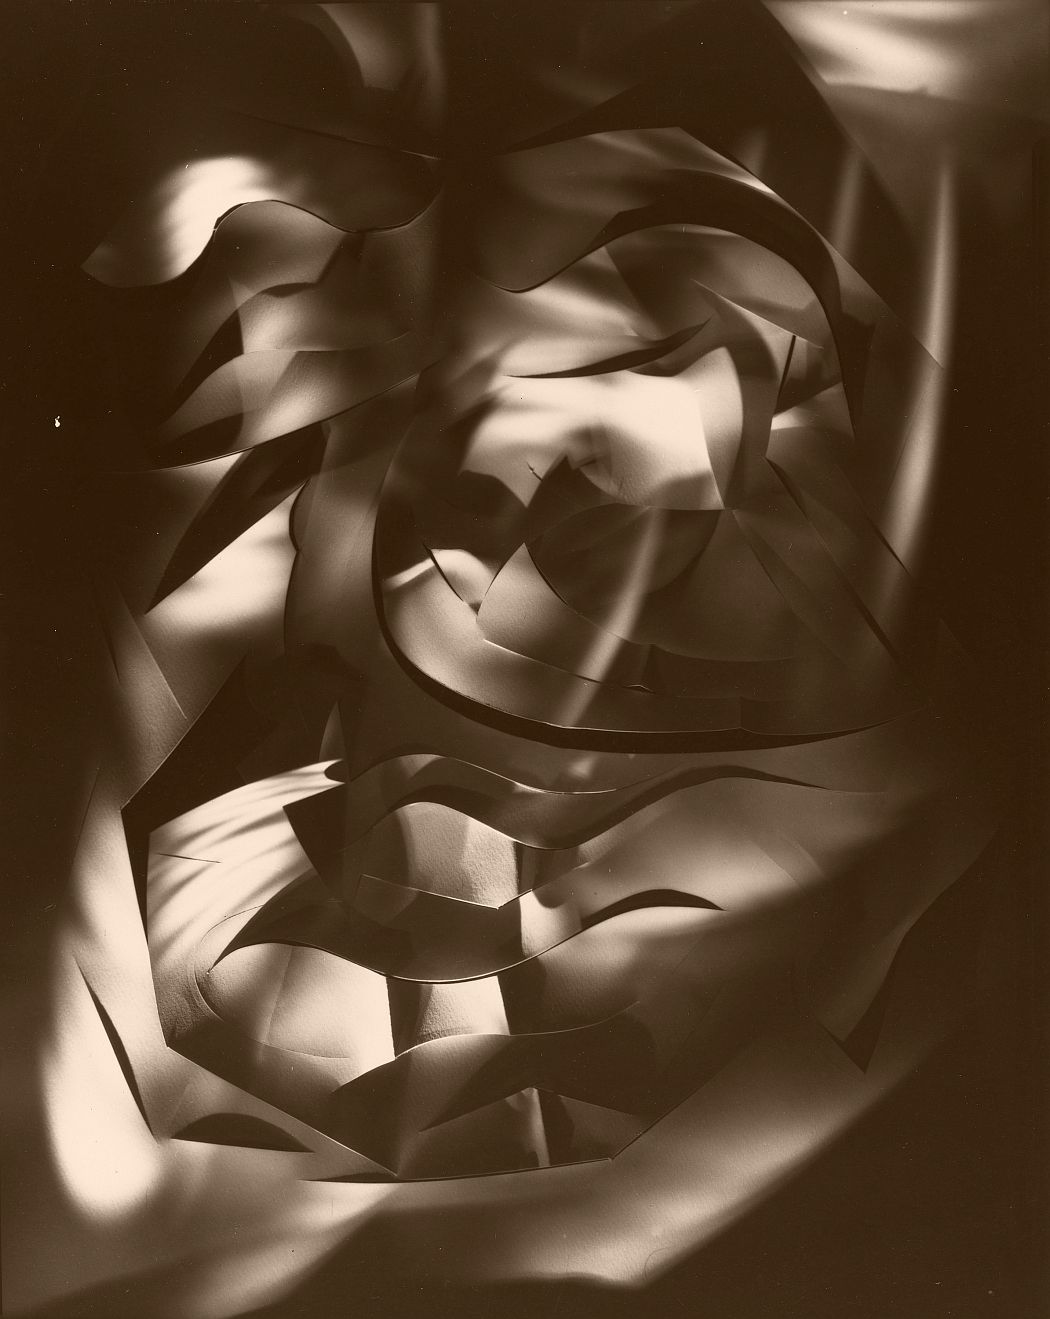 Abstract photographer Francis Bruguiere